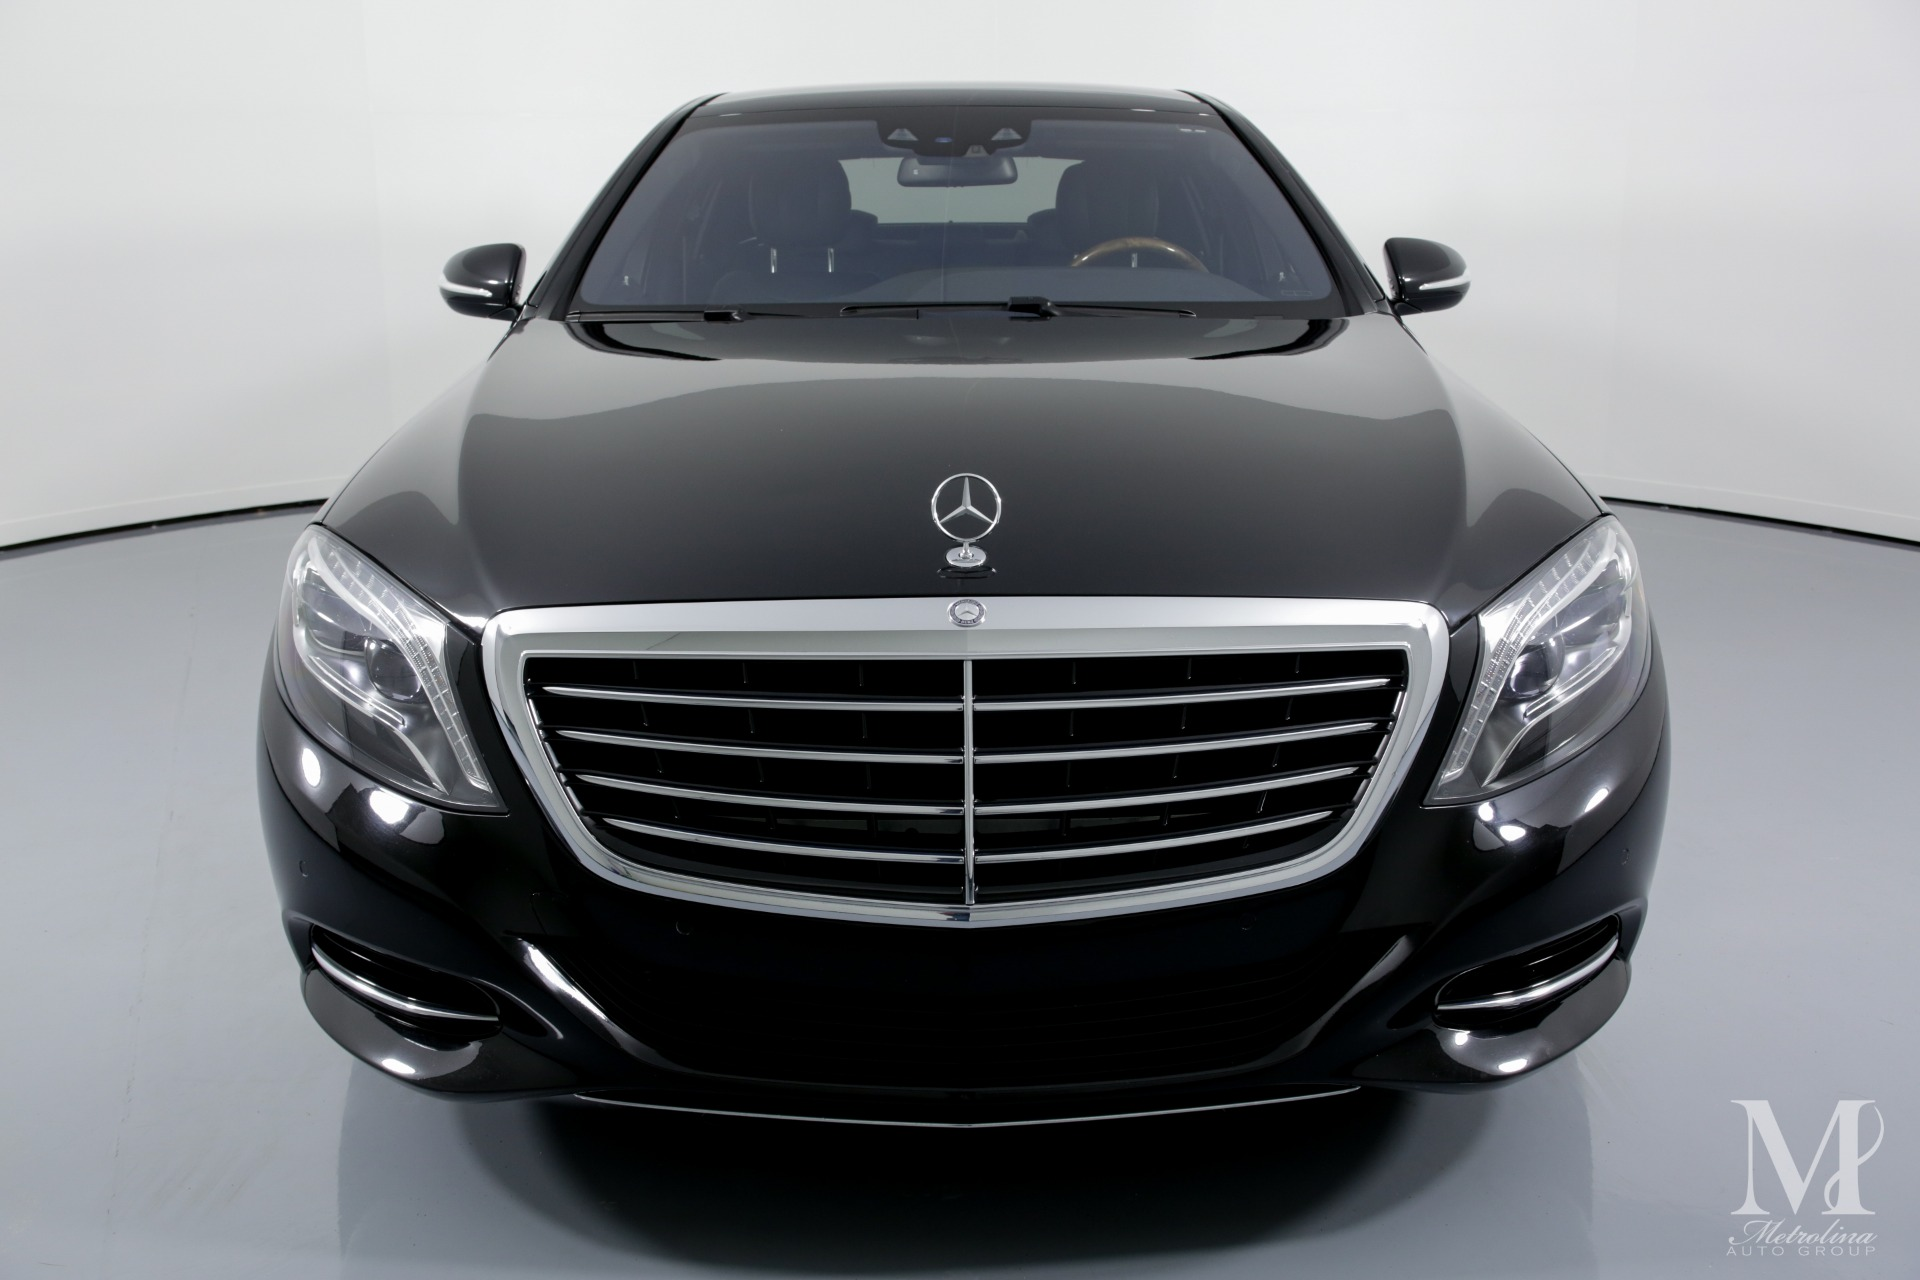 Used 2016 Mercedes-Benz S-Class S 550 4dr Sedan for sale $44,996 at Metrolina Auto Group in Charlotte NC 28217 - 3